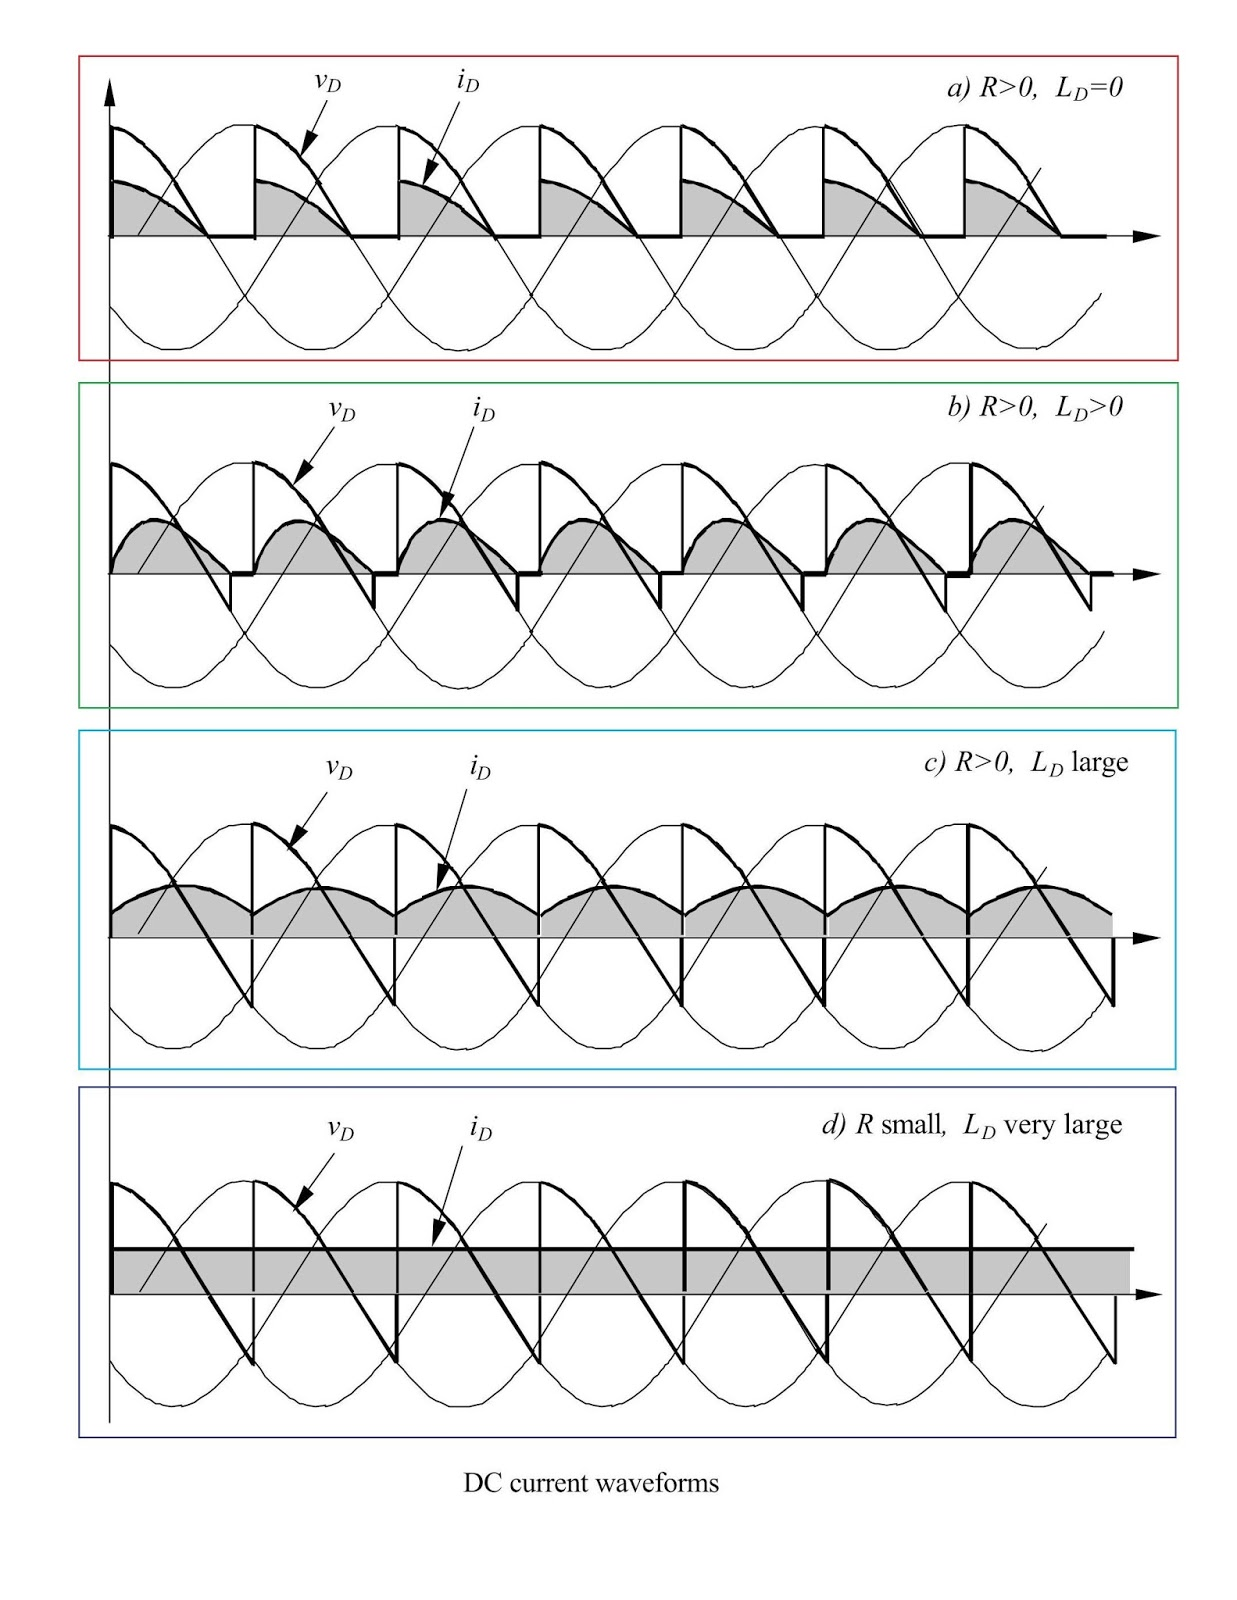 Flamingidea Controlled Rectifier Types And Description The Full Wave Averaging Filter Dc Current Waveforms Of Three Phase Half Under Various Type Load Is Illustrated Here